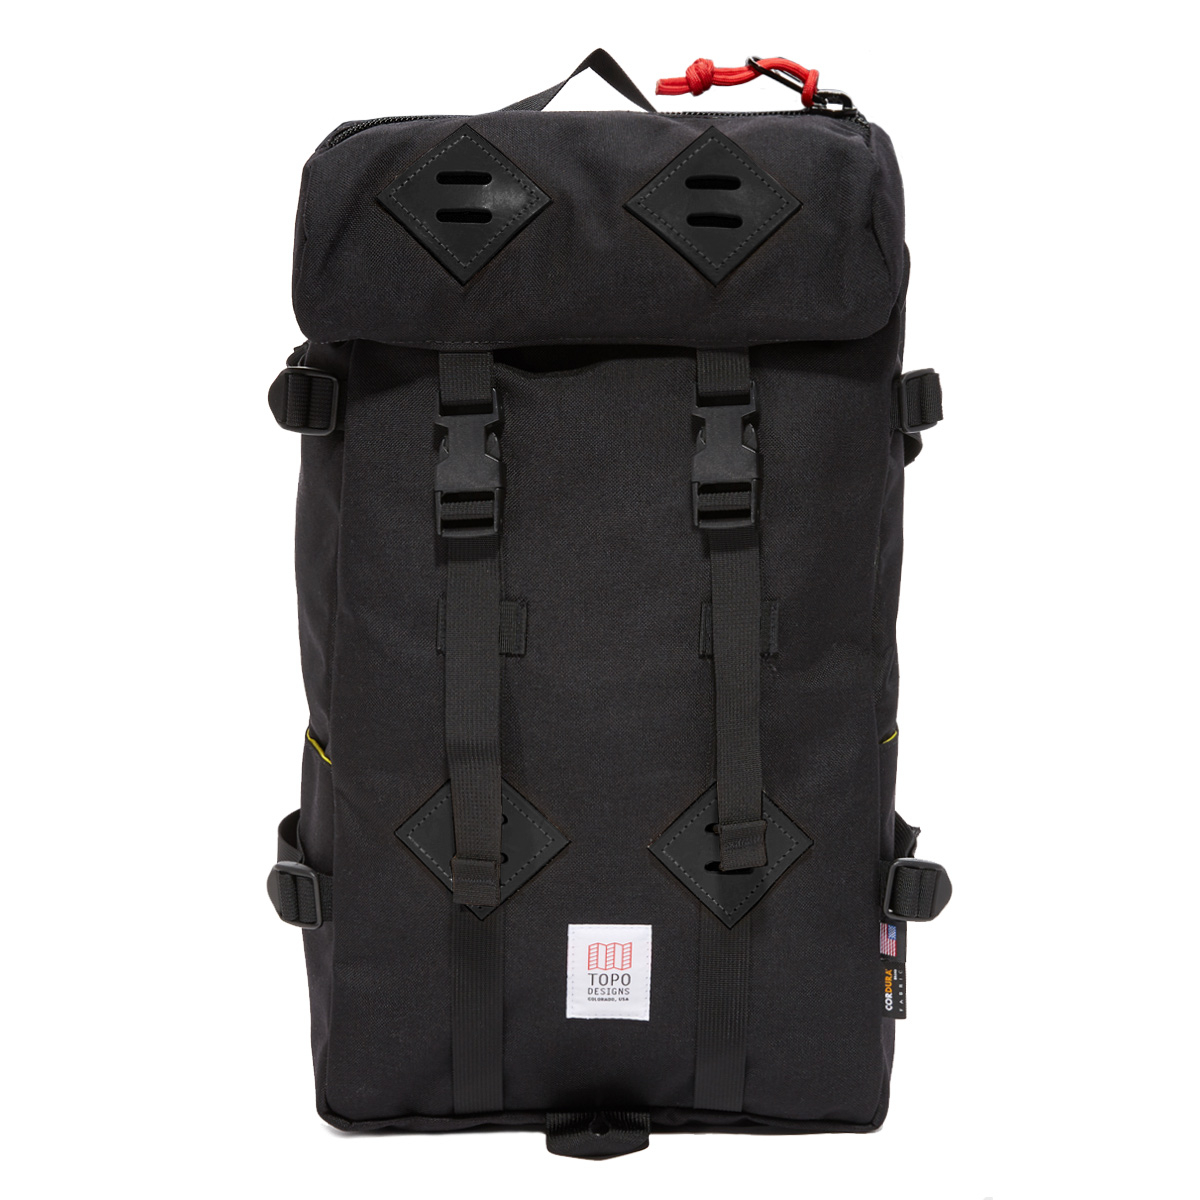 Topo Designs Klettersack, classic backpack from Topo Designs